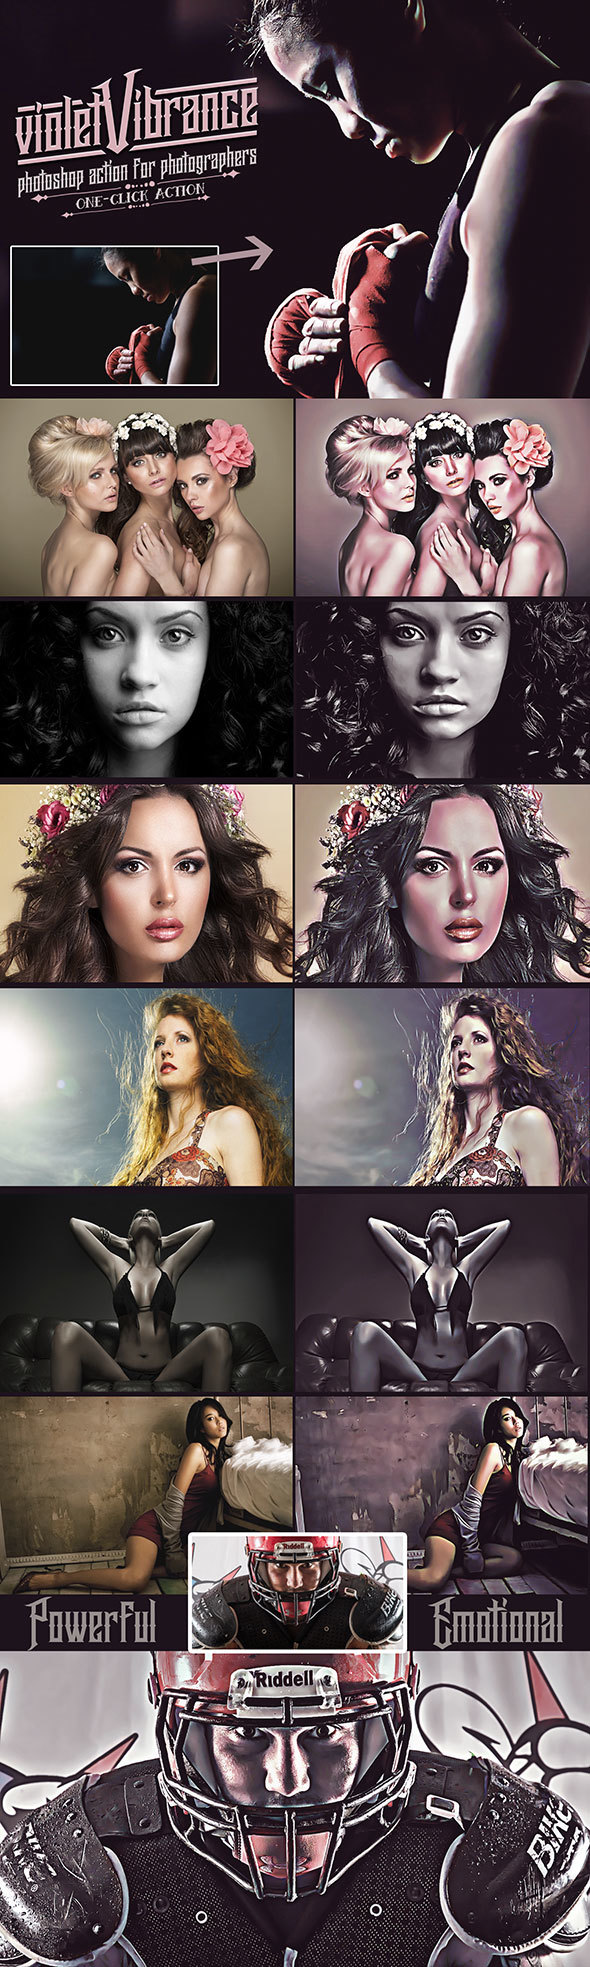 VioletVibrance Photoshop Portrait Actions - Photo Effects Actions